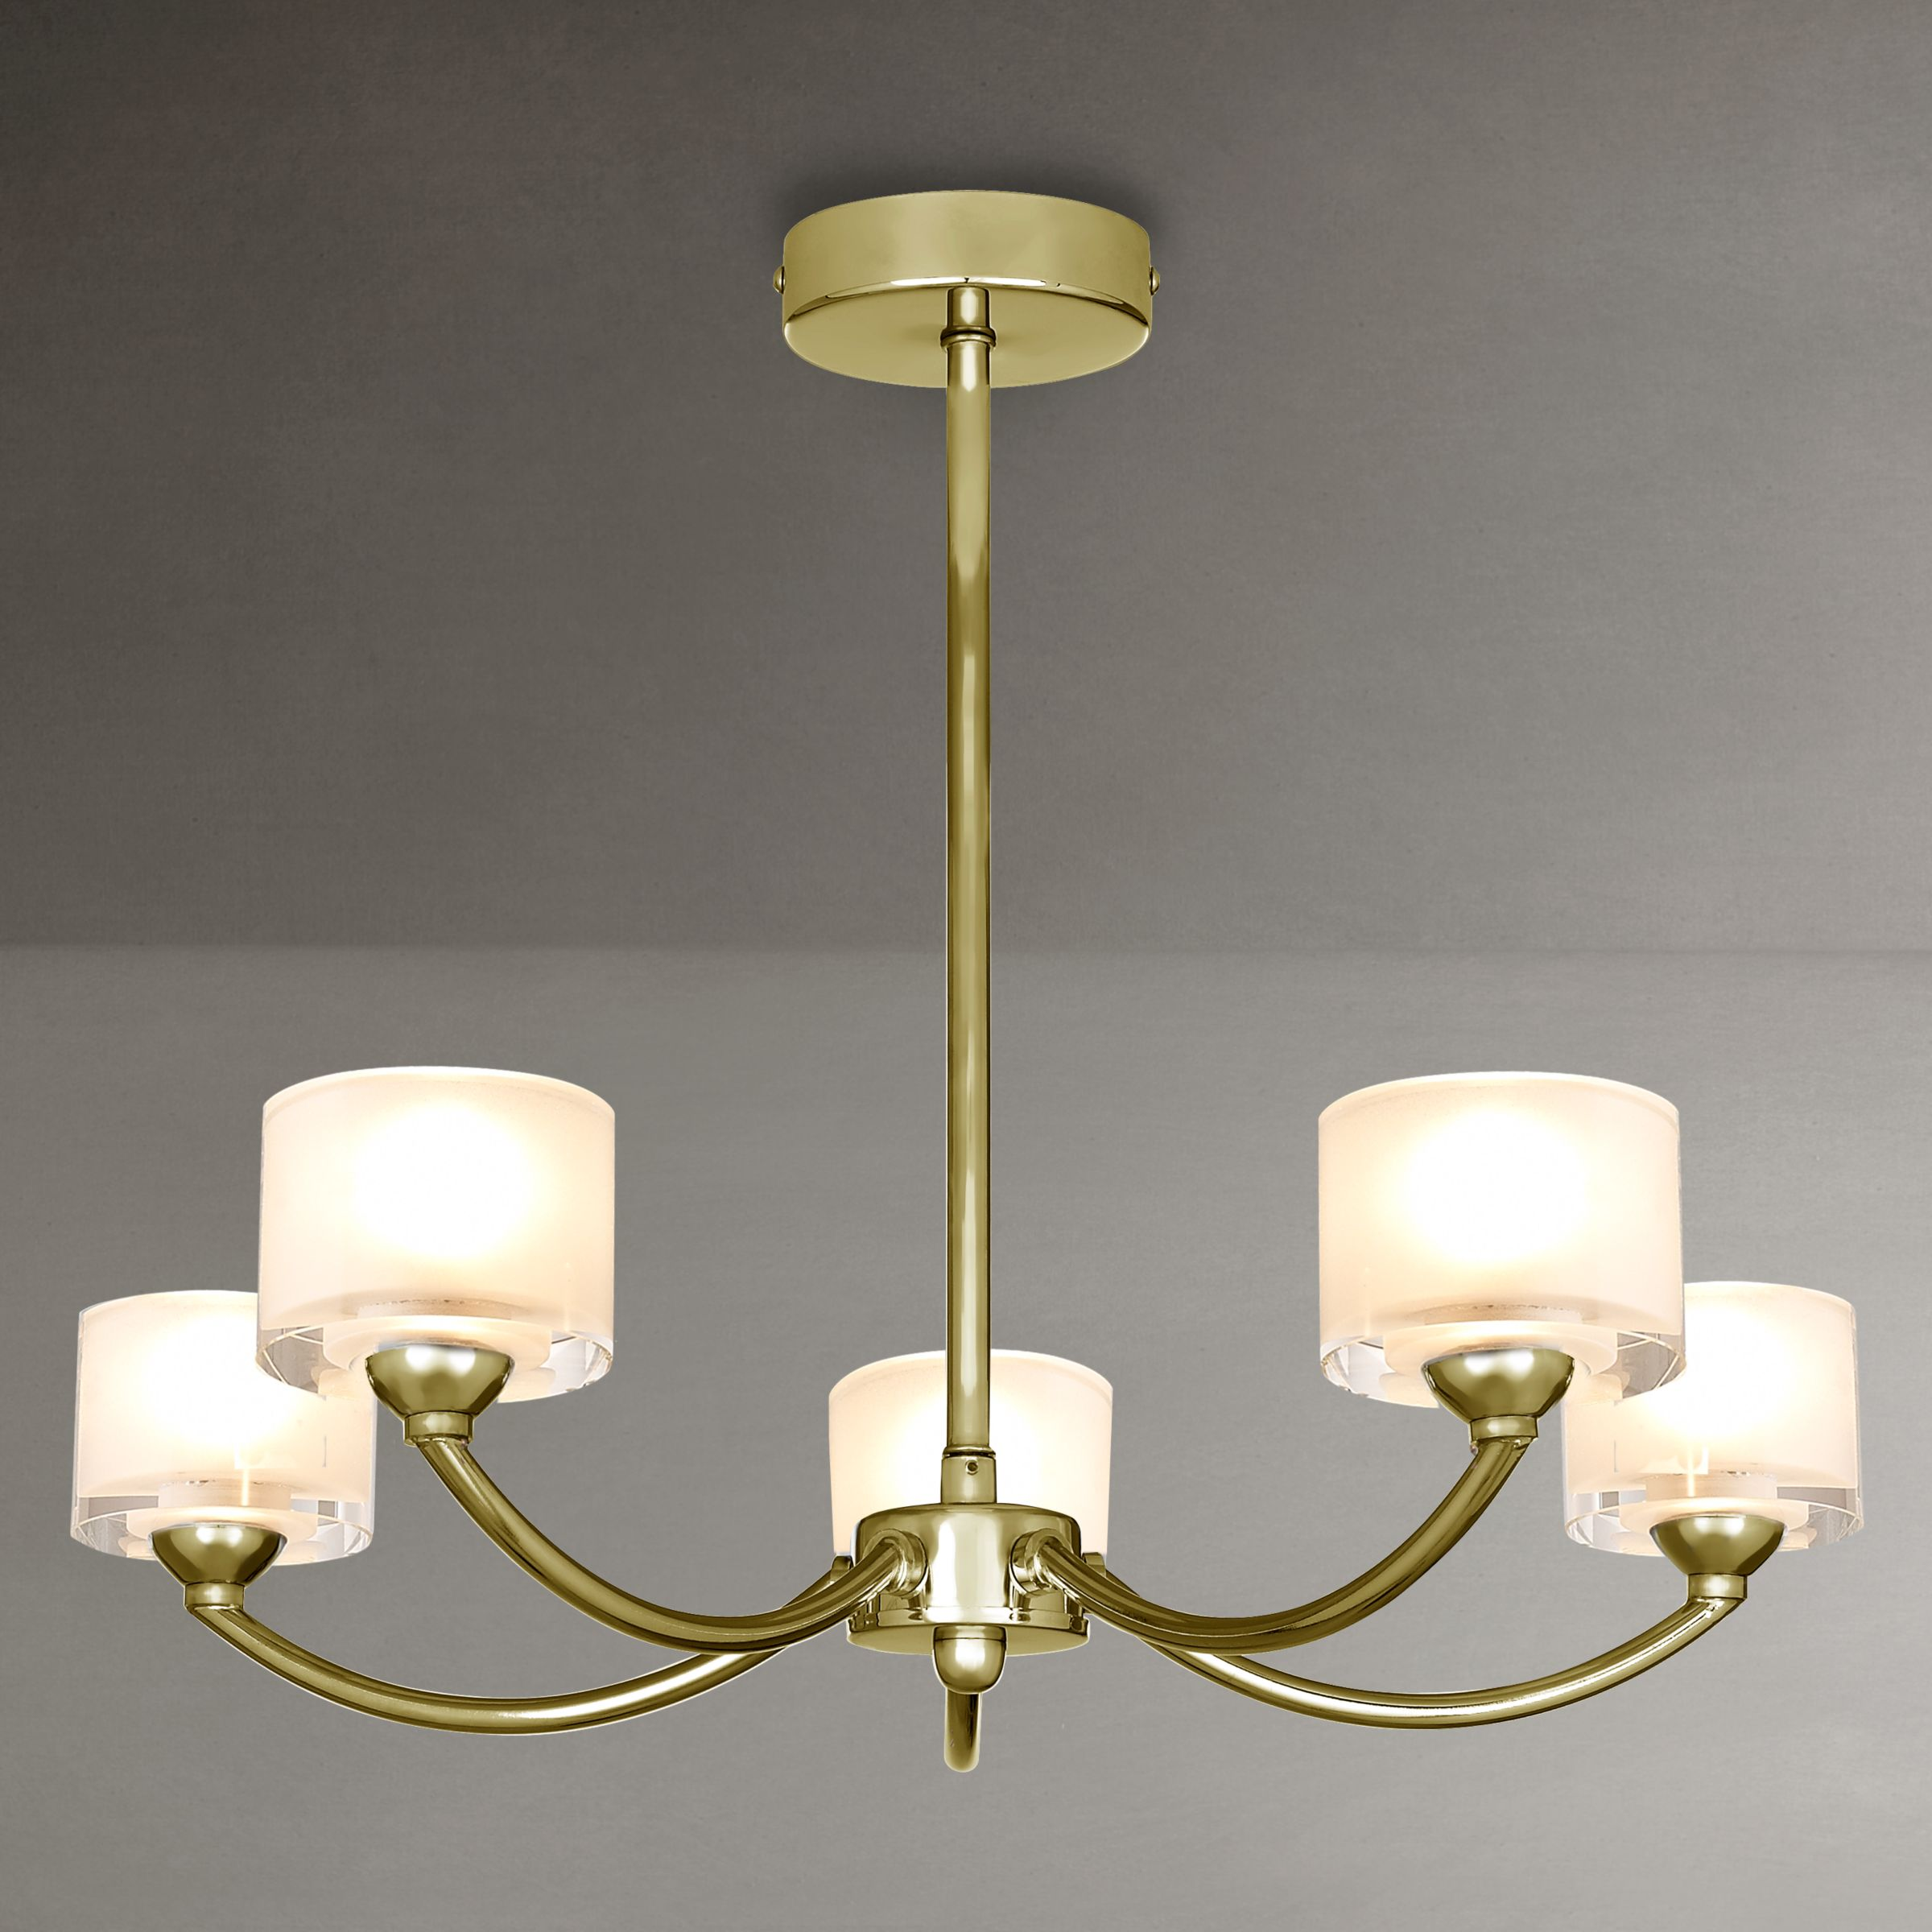 John Lewis White Ceiling Lights : John lewis paige ceiling light arm review compare